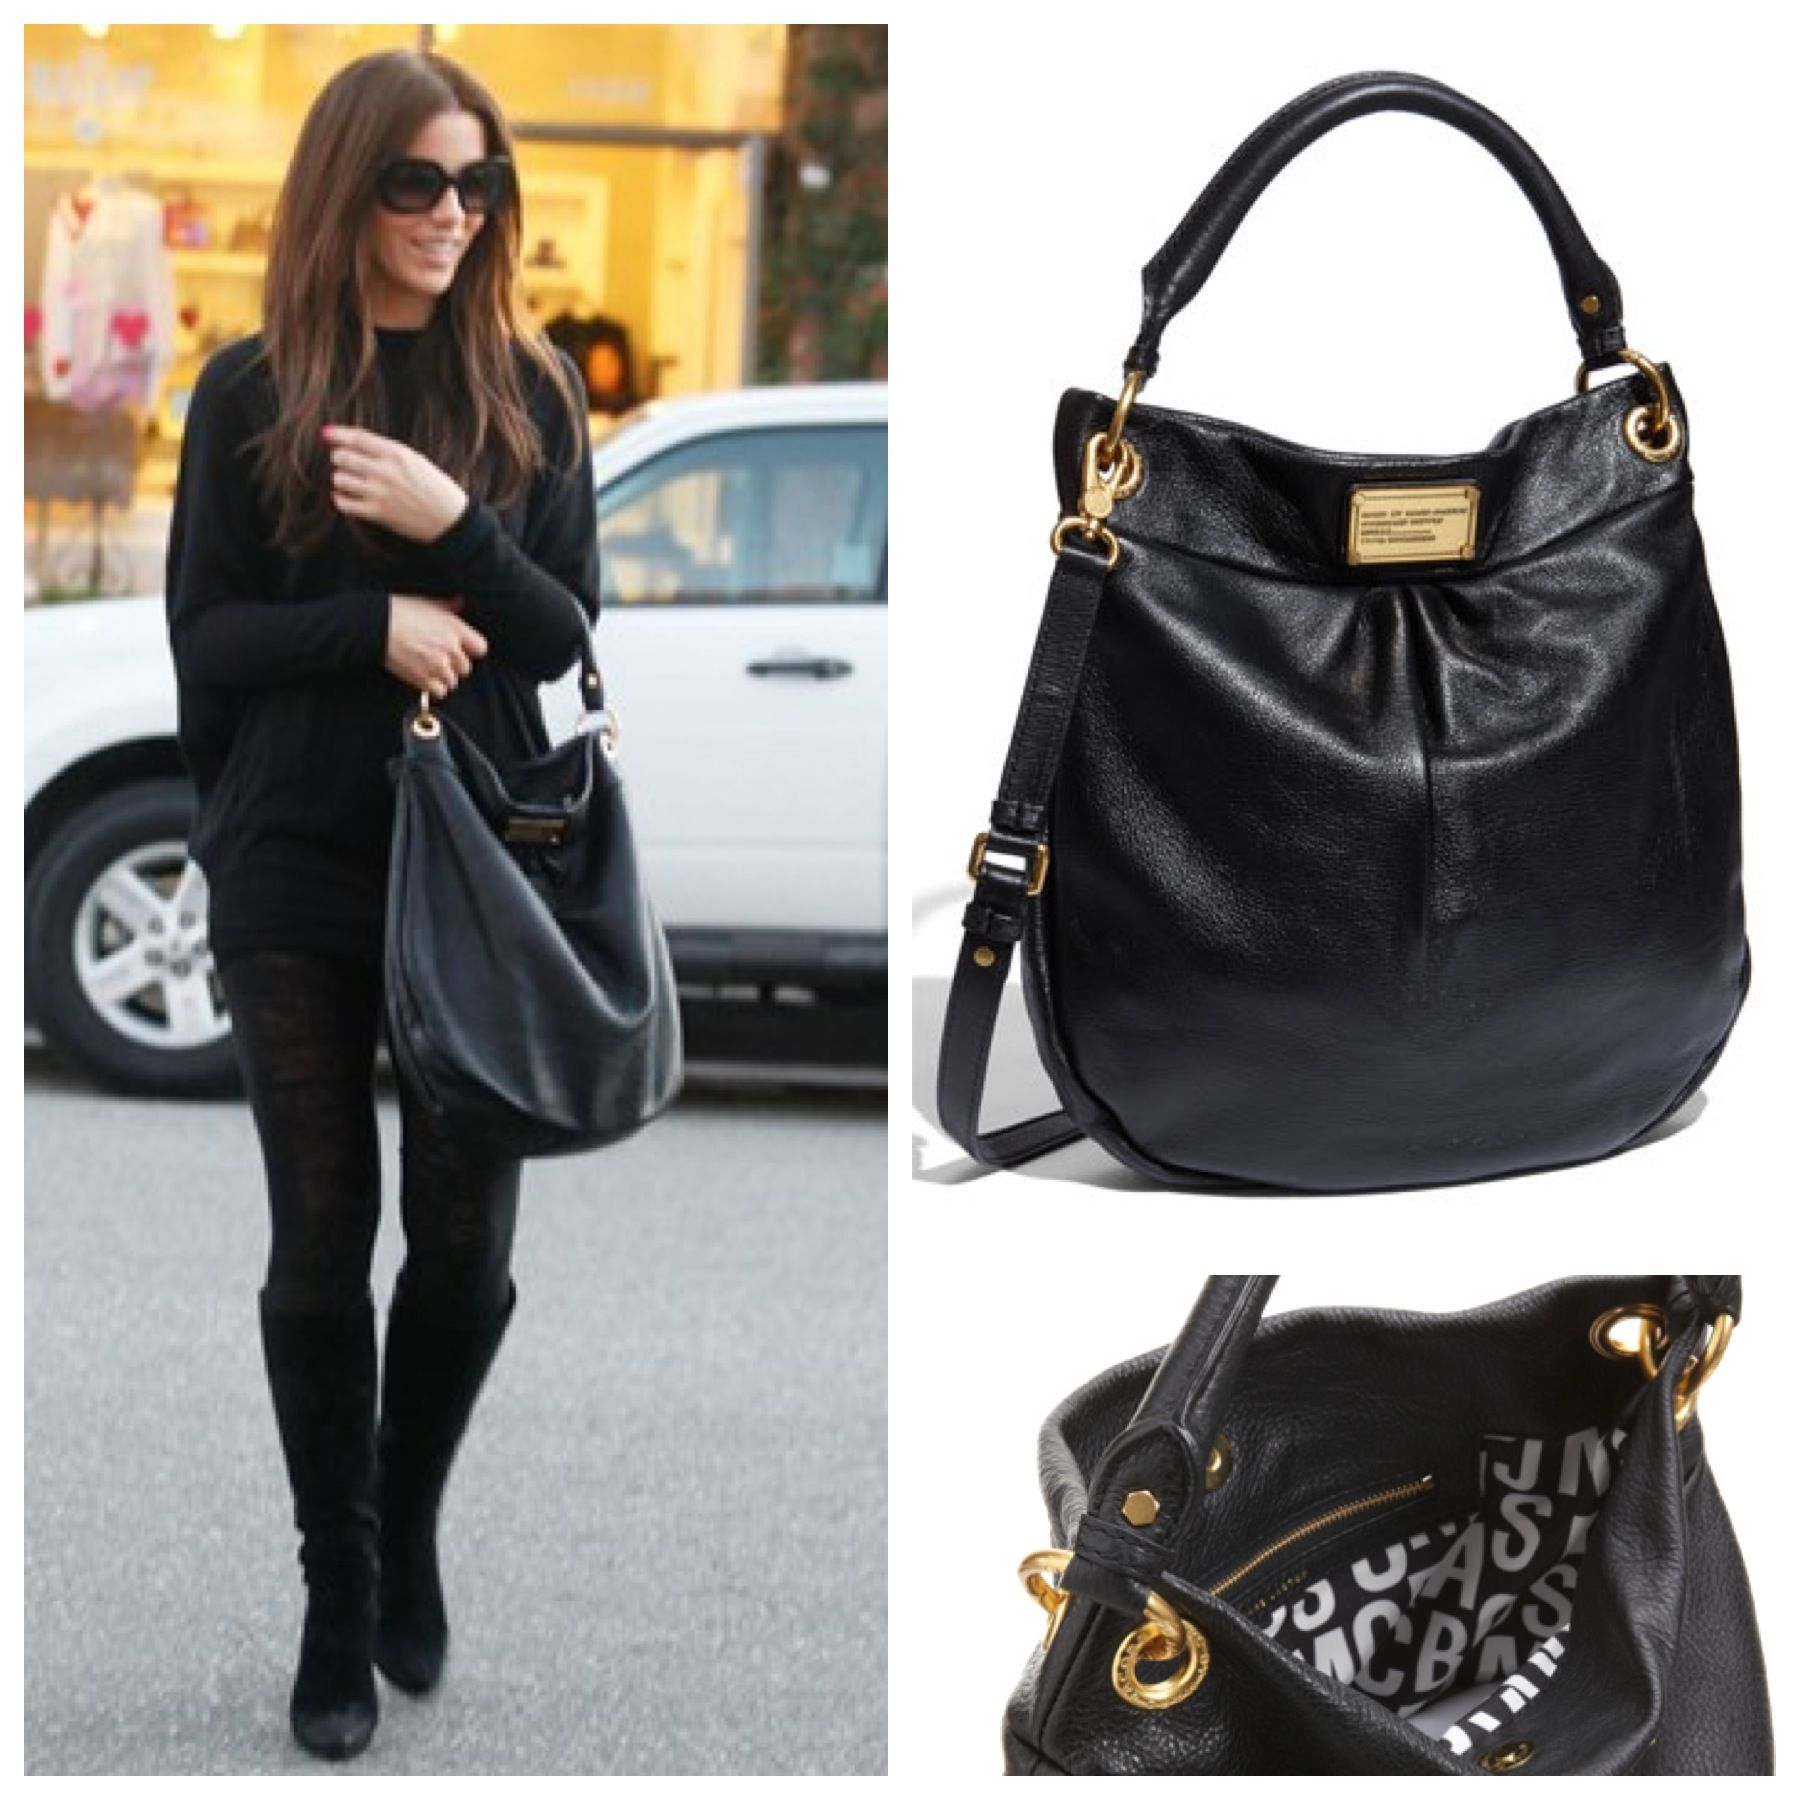 Snag the bag for less! -- Kate Beckinsale spotted with black Marc ...